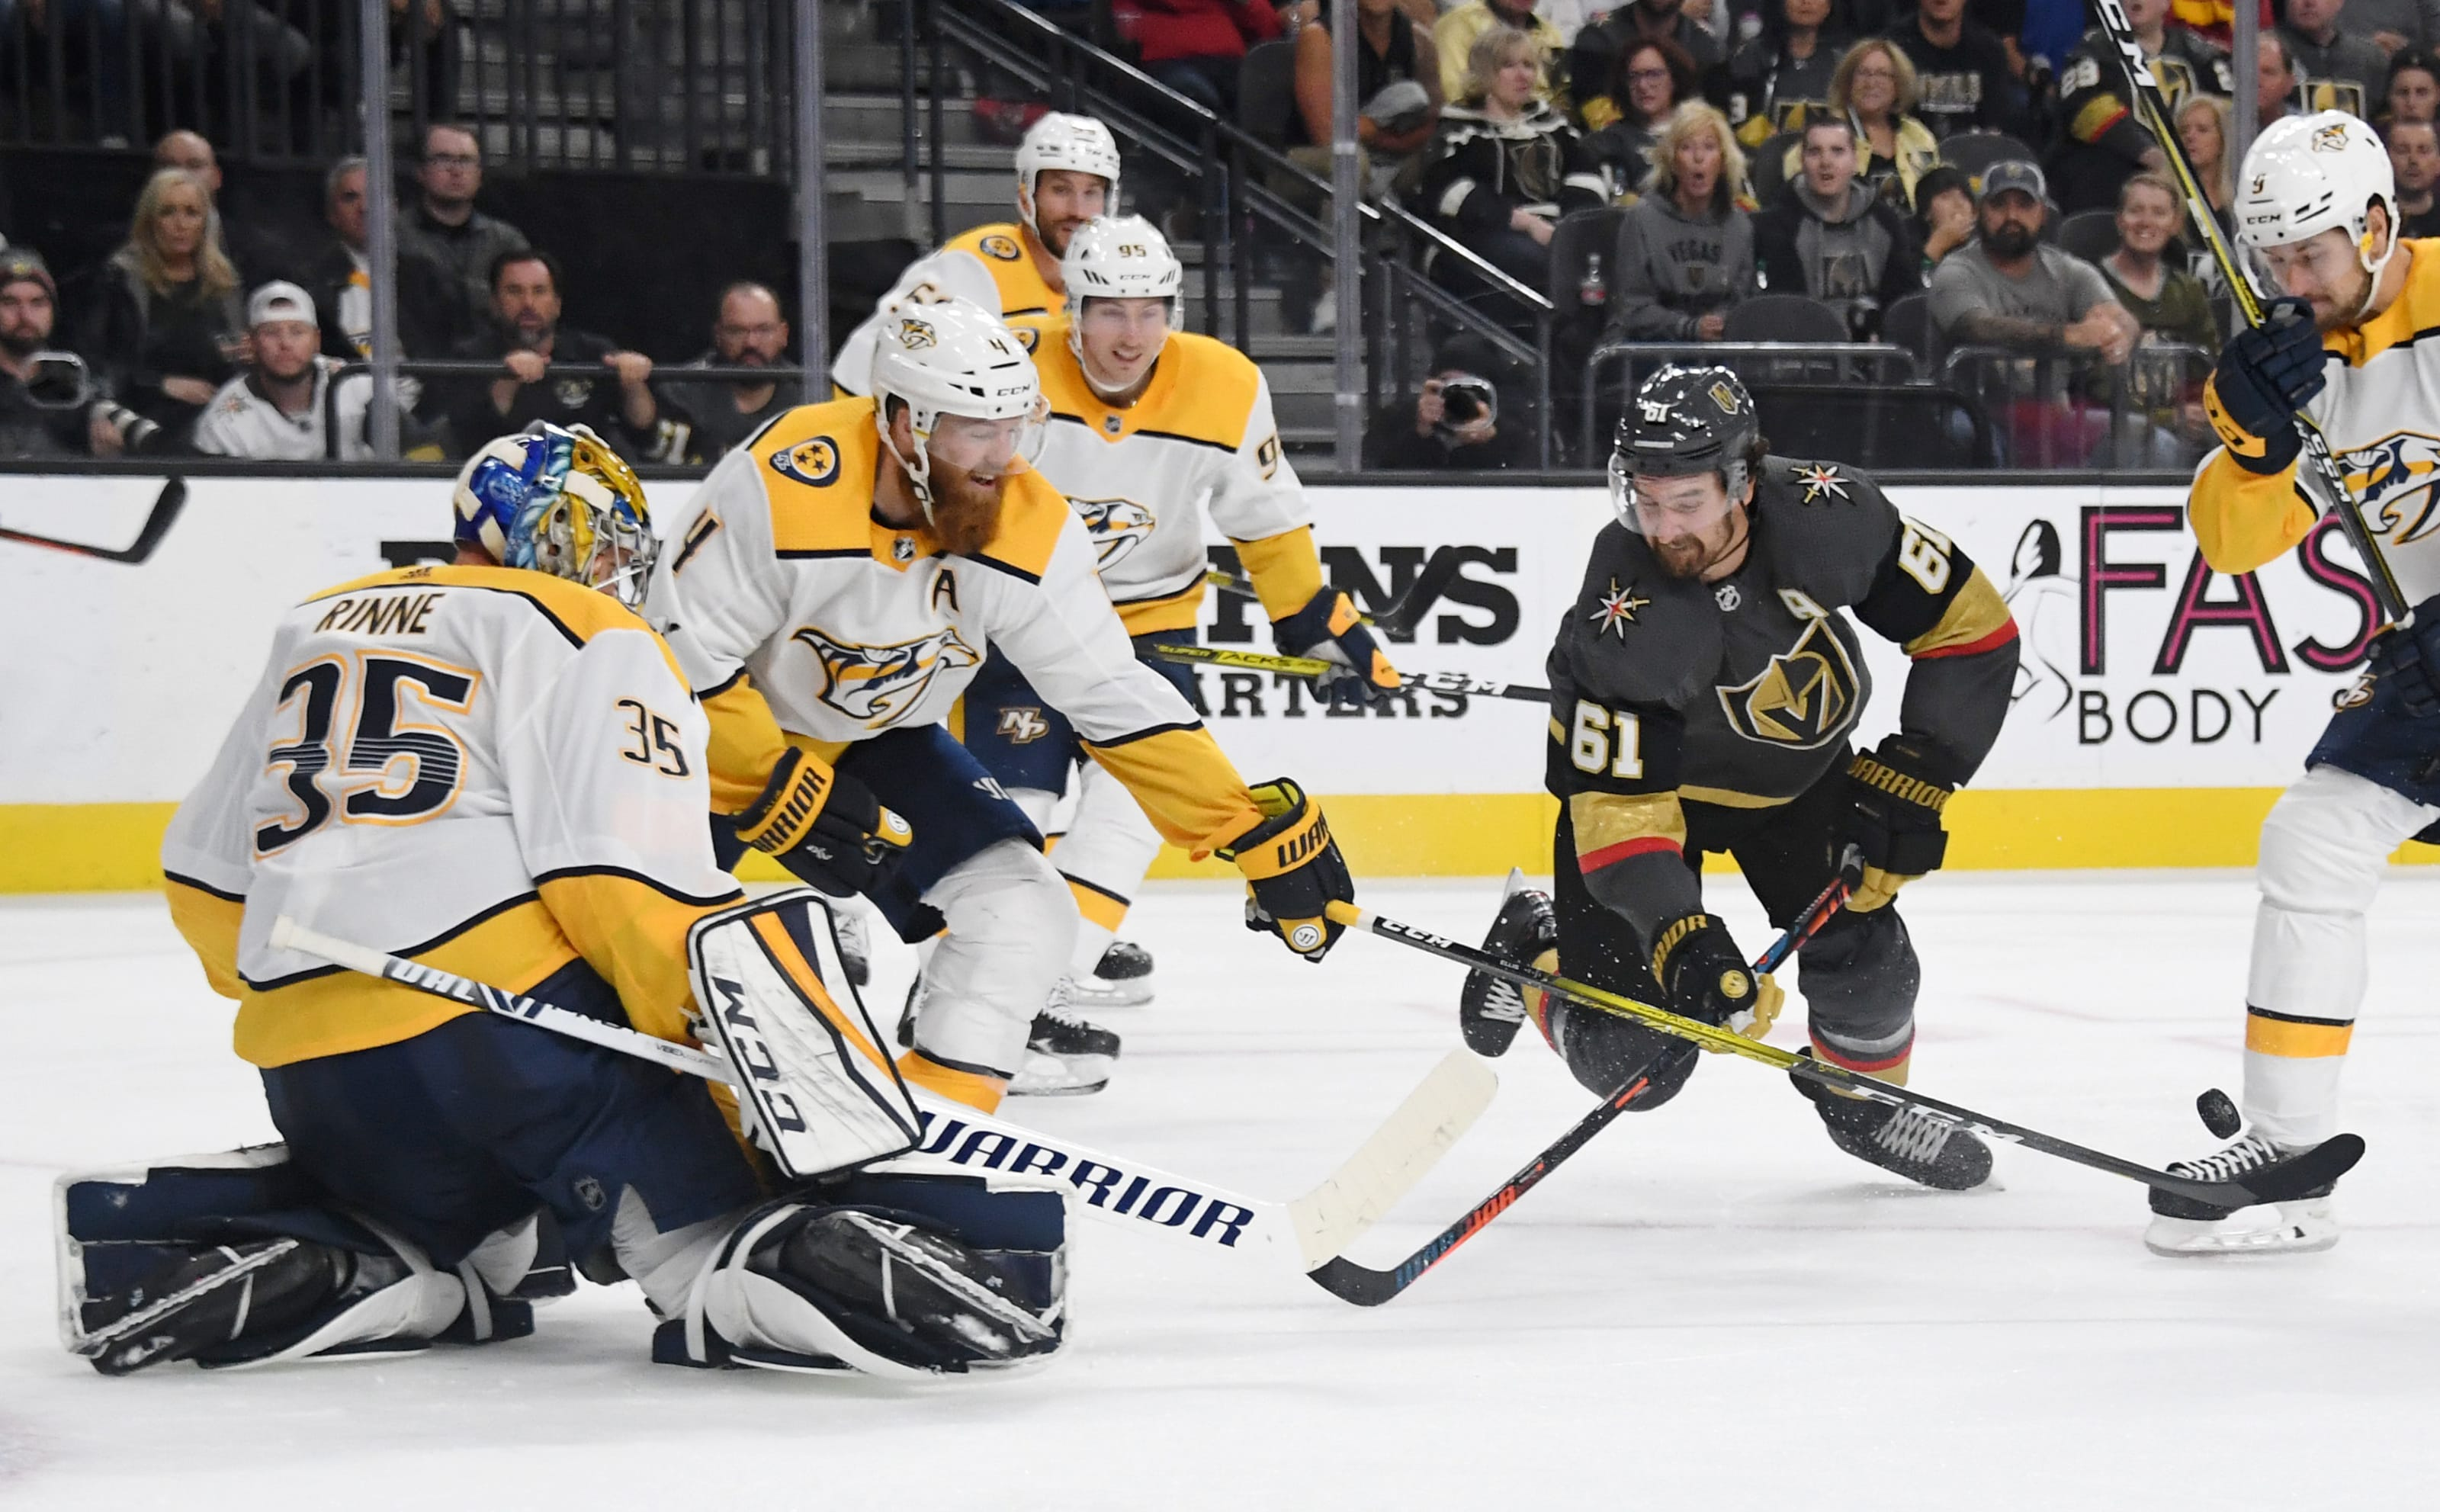 Ryan Ellis #4 of the Nashville Predators knocks the puck away from Mark Stone #61 of the Vegas Golden Knights.